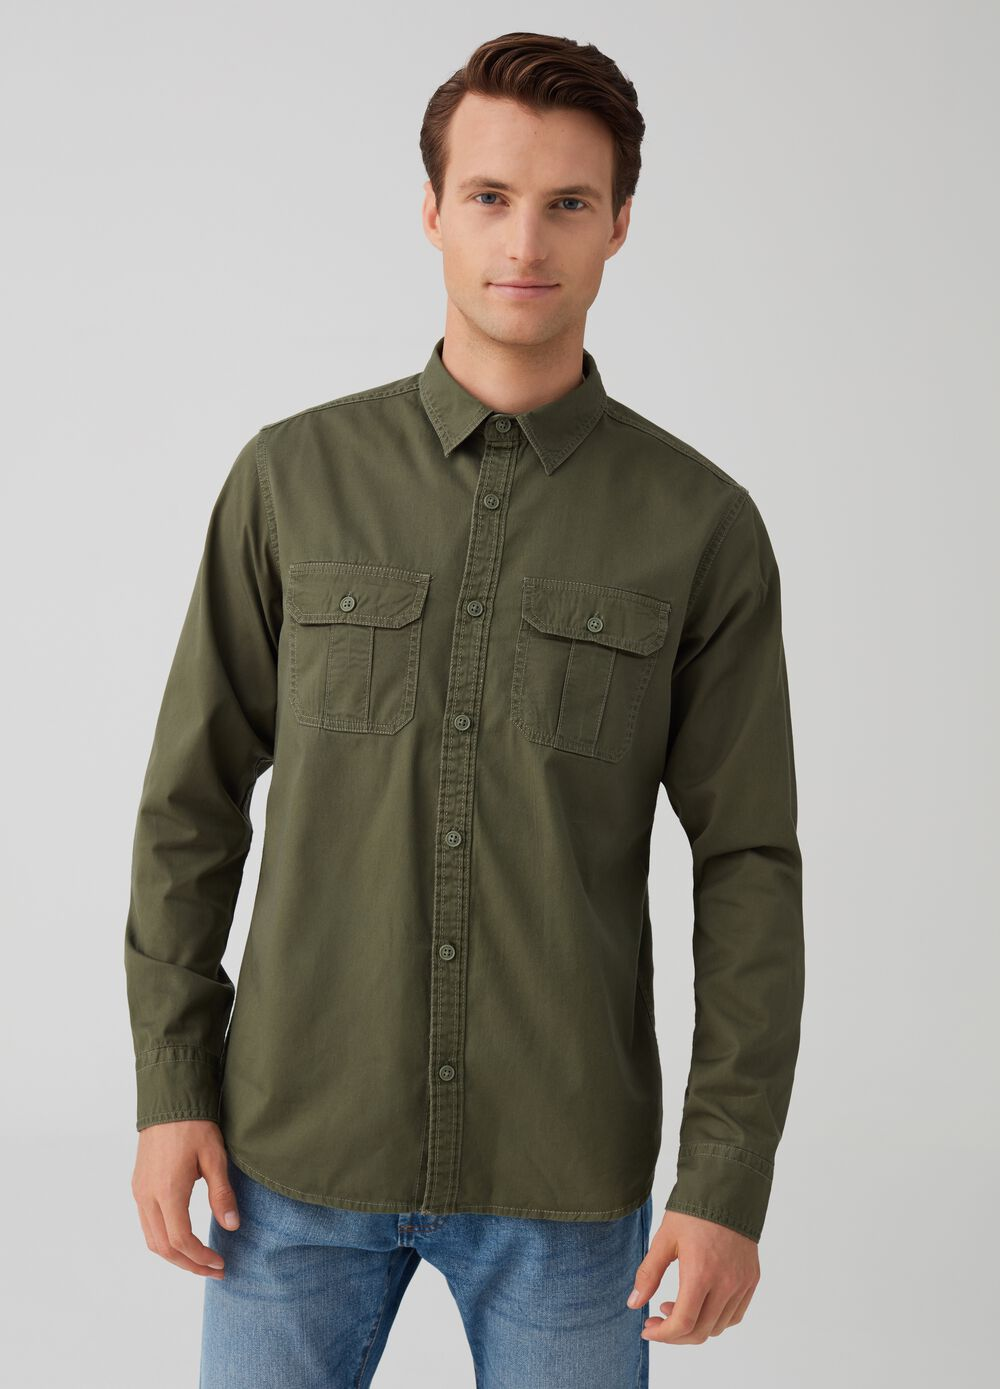 100% cotton slim-fit shirt with pockets